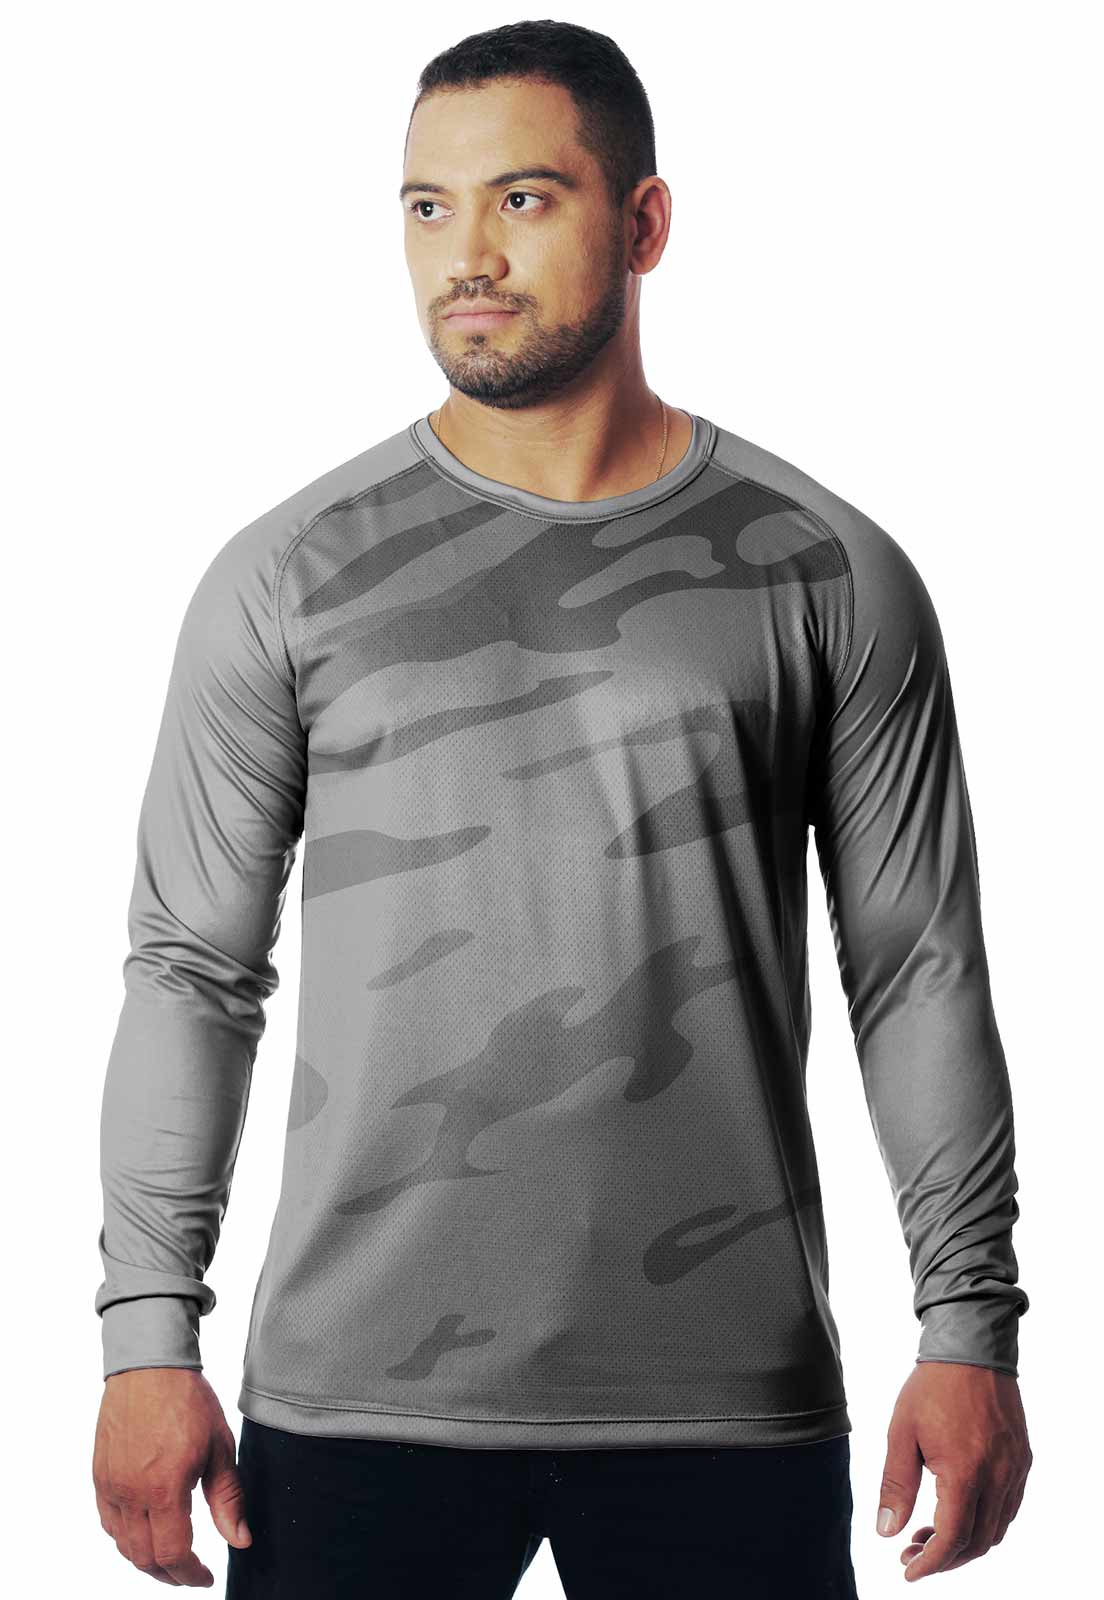 CAMISETA CAMUFLADA LAZER 11 MANGA LONGA MASCULINA  - REAL HUNTER OUTDOORS